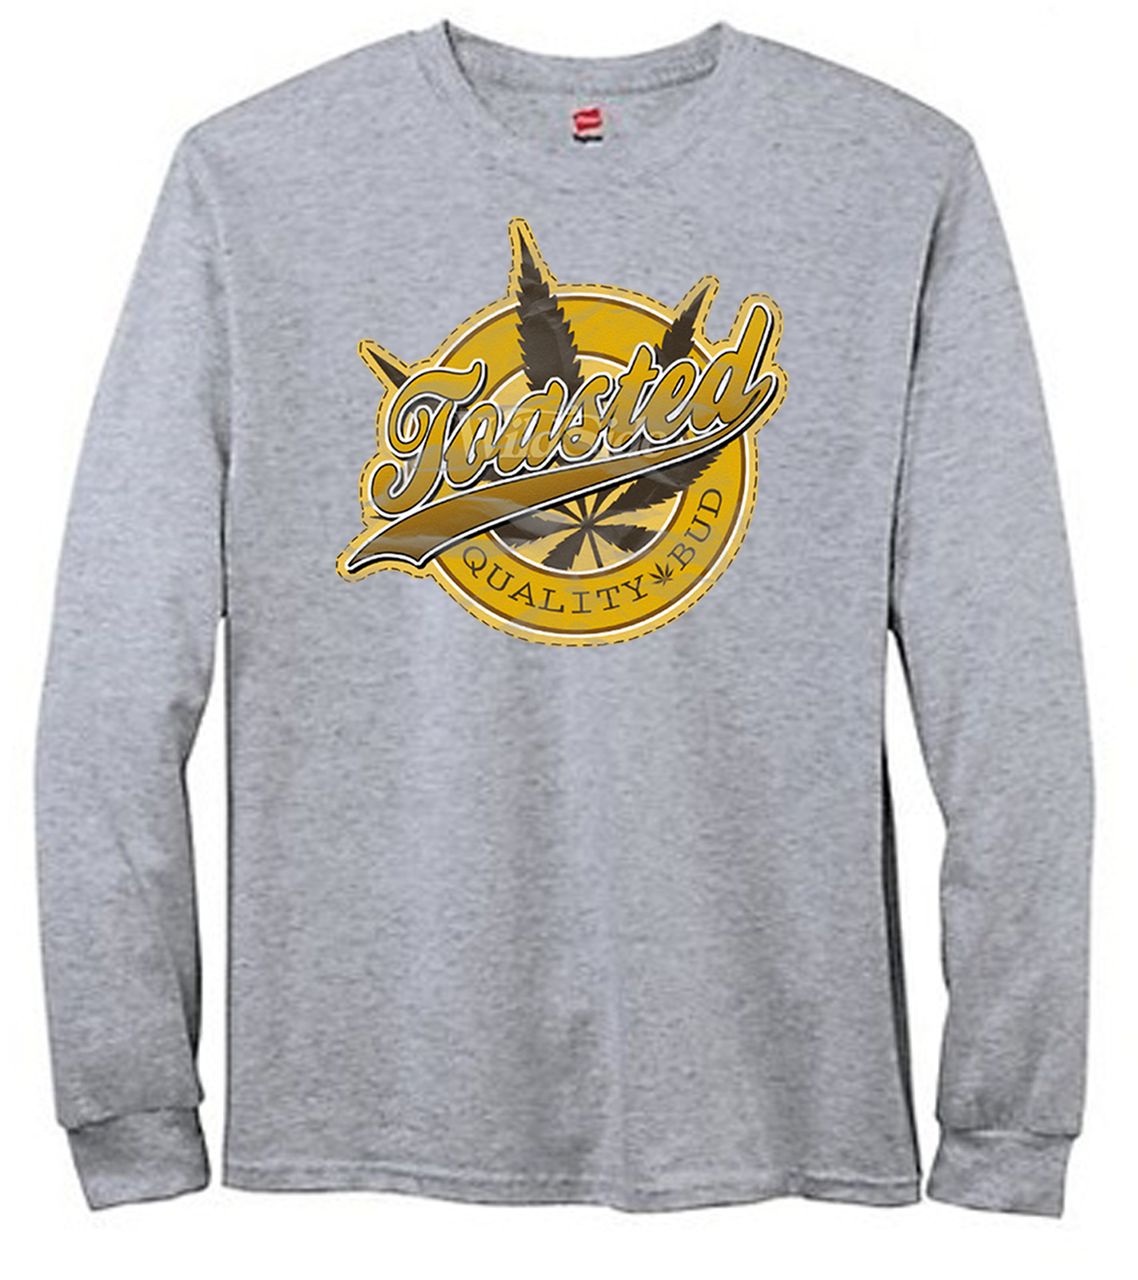 Toasted Quality Buds Men's Long Sleeve T-Shirt